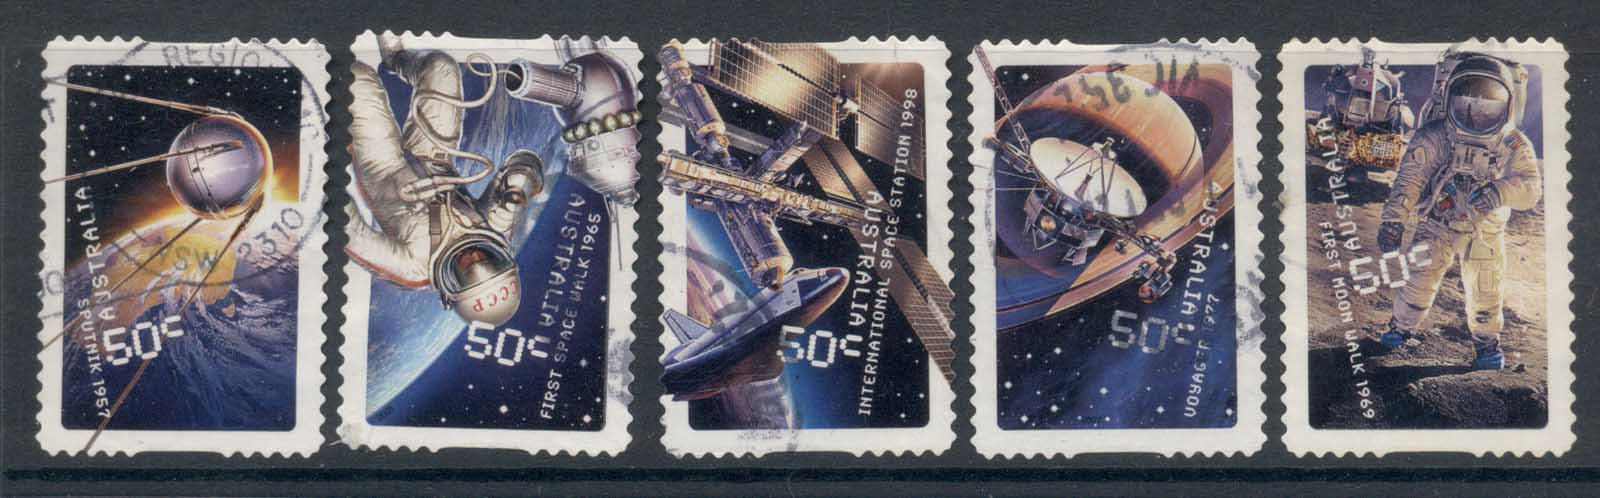 Australia 2007 Space Age 50th Anniv. P&S FU